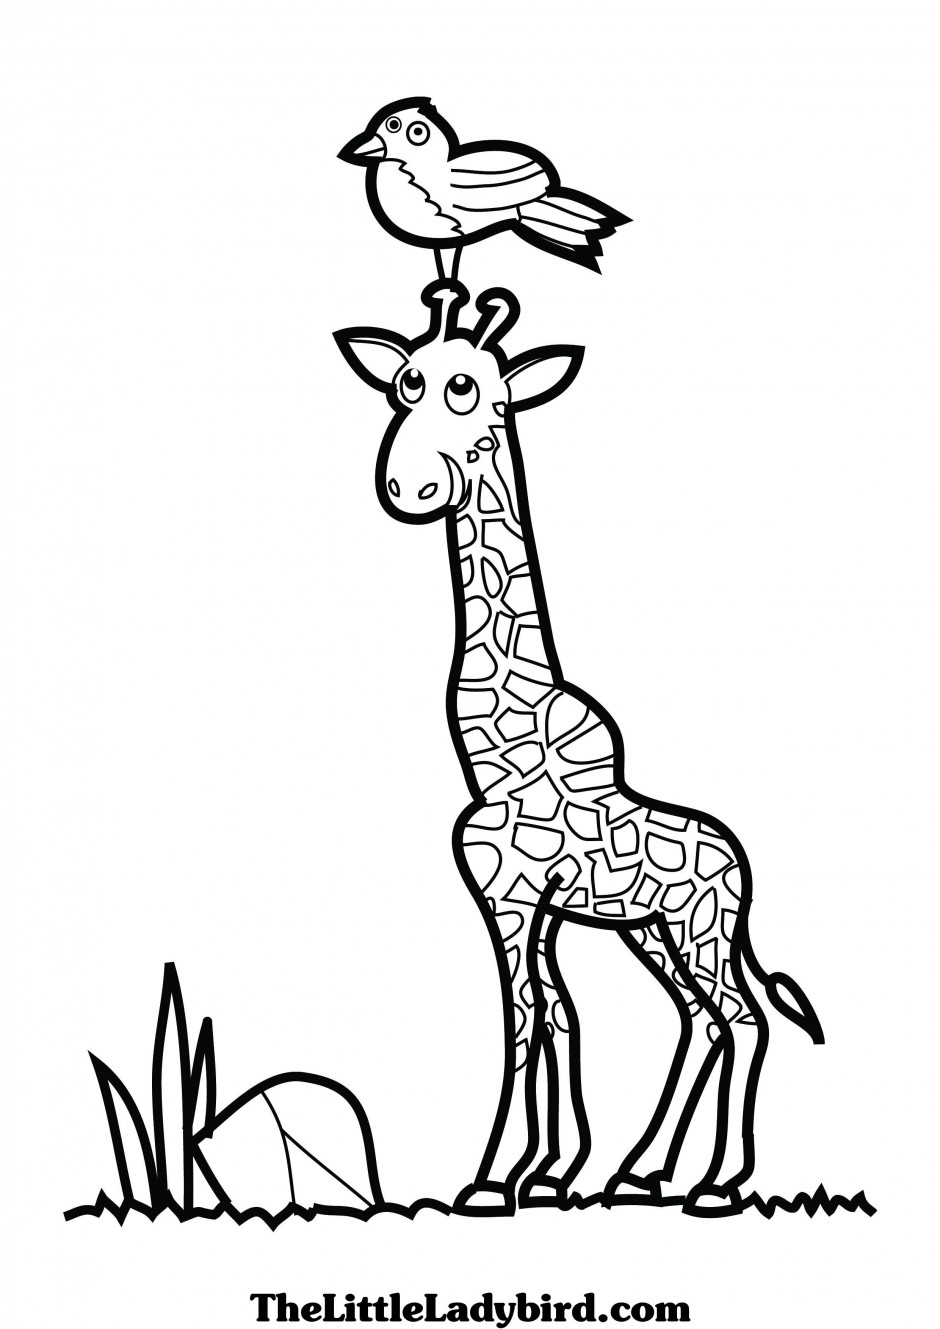 Baby giraffe coloring pages | Clipart Panda - Free Clipart Images